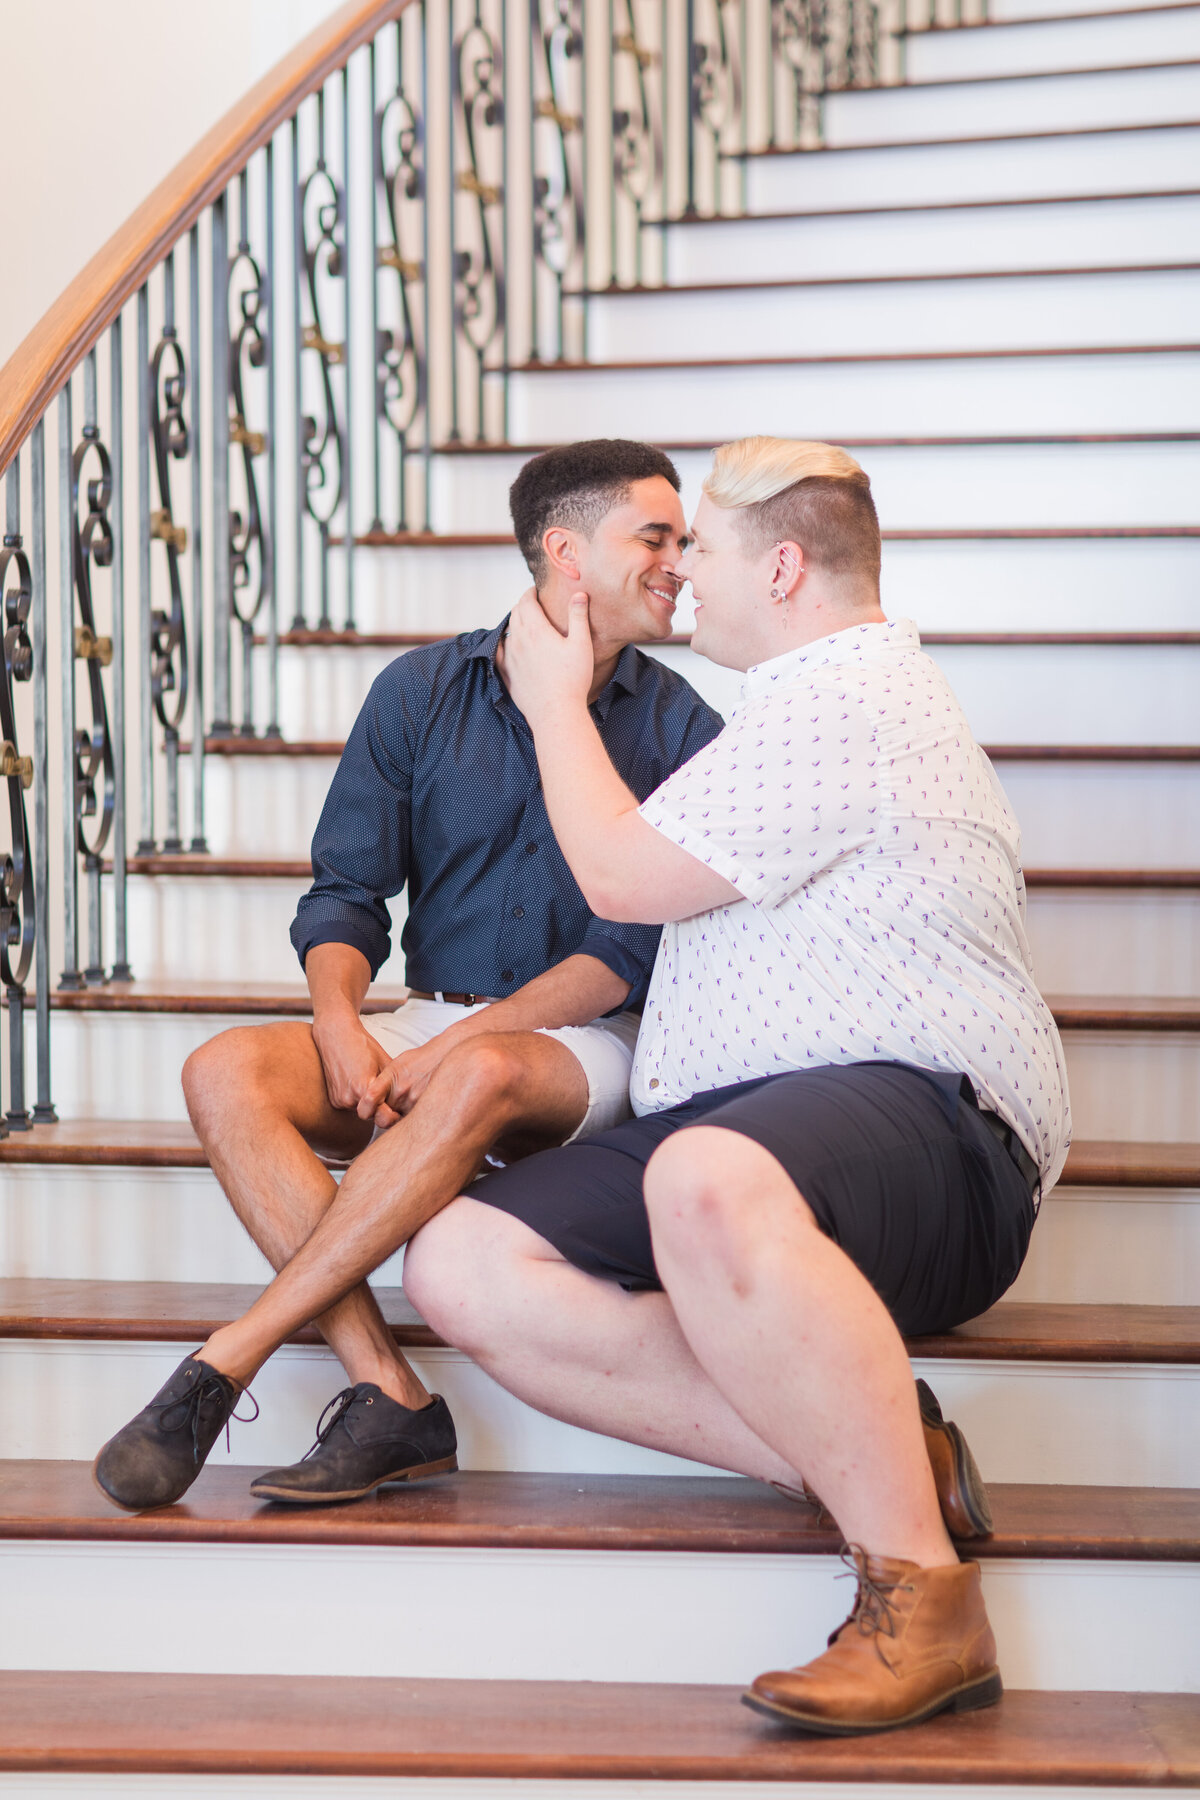 LGBTQ_Engagement_Session_Renault_Winery_Galloway_New_Jersey-11